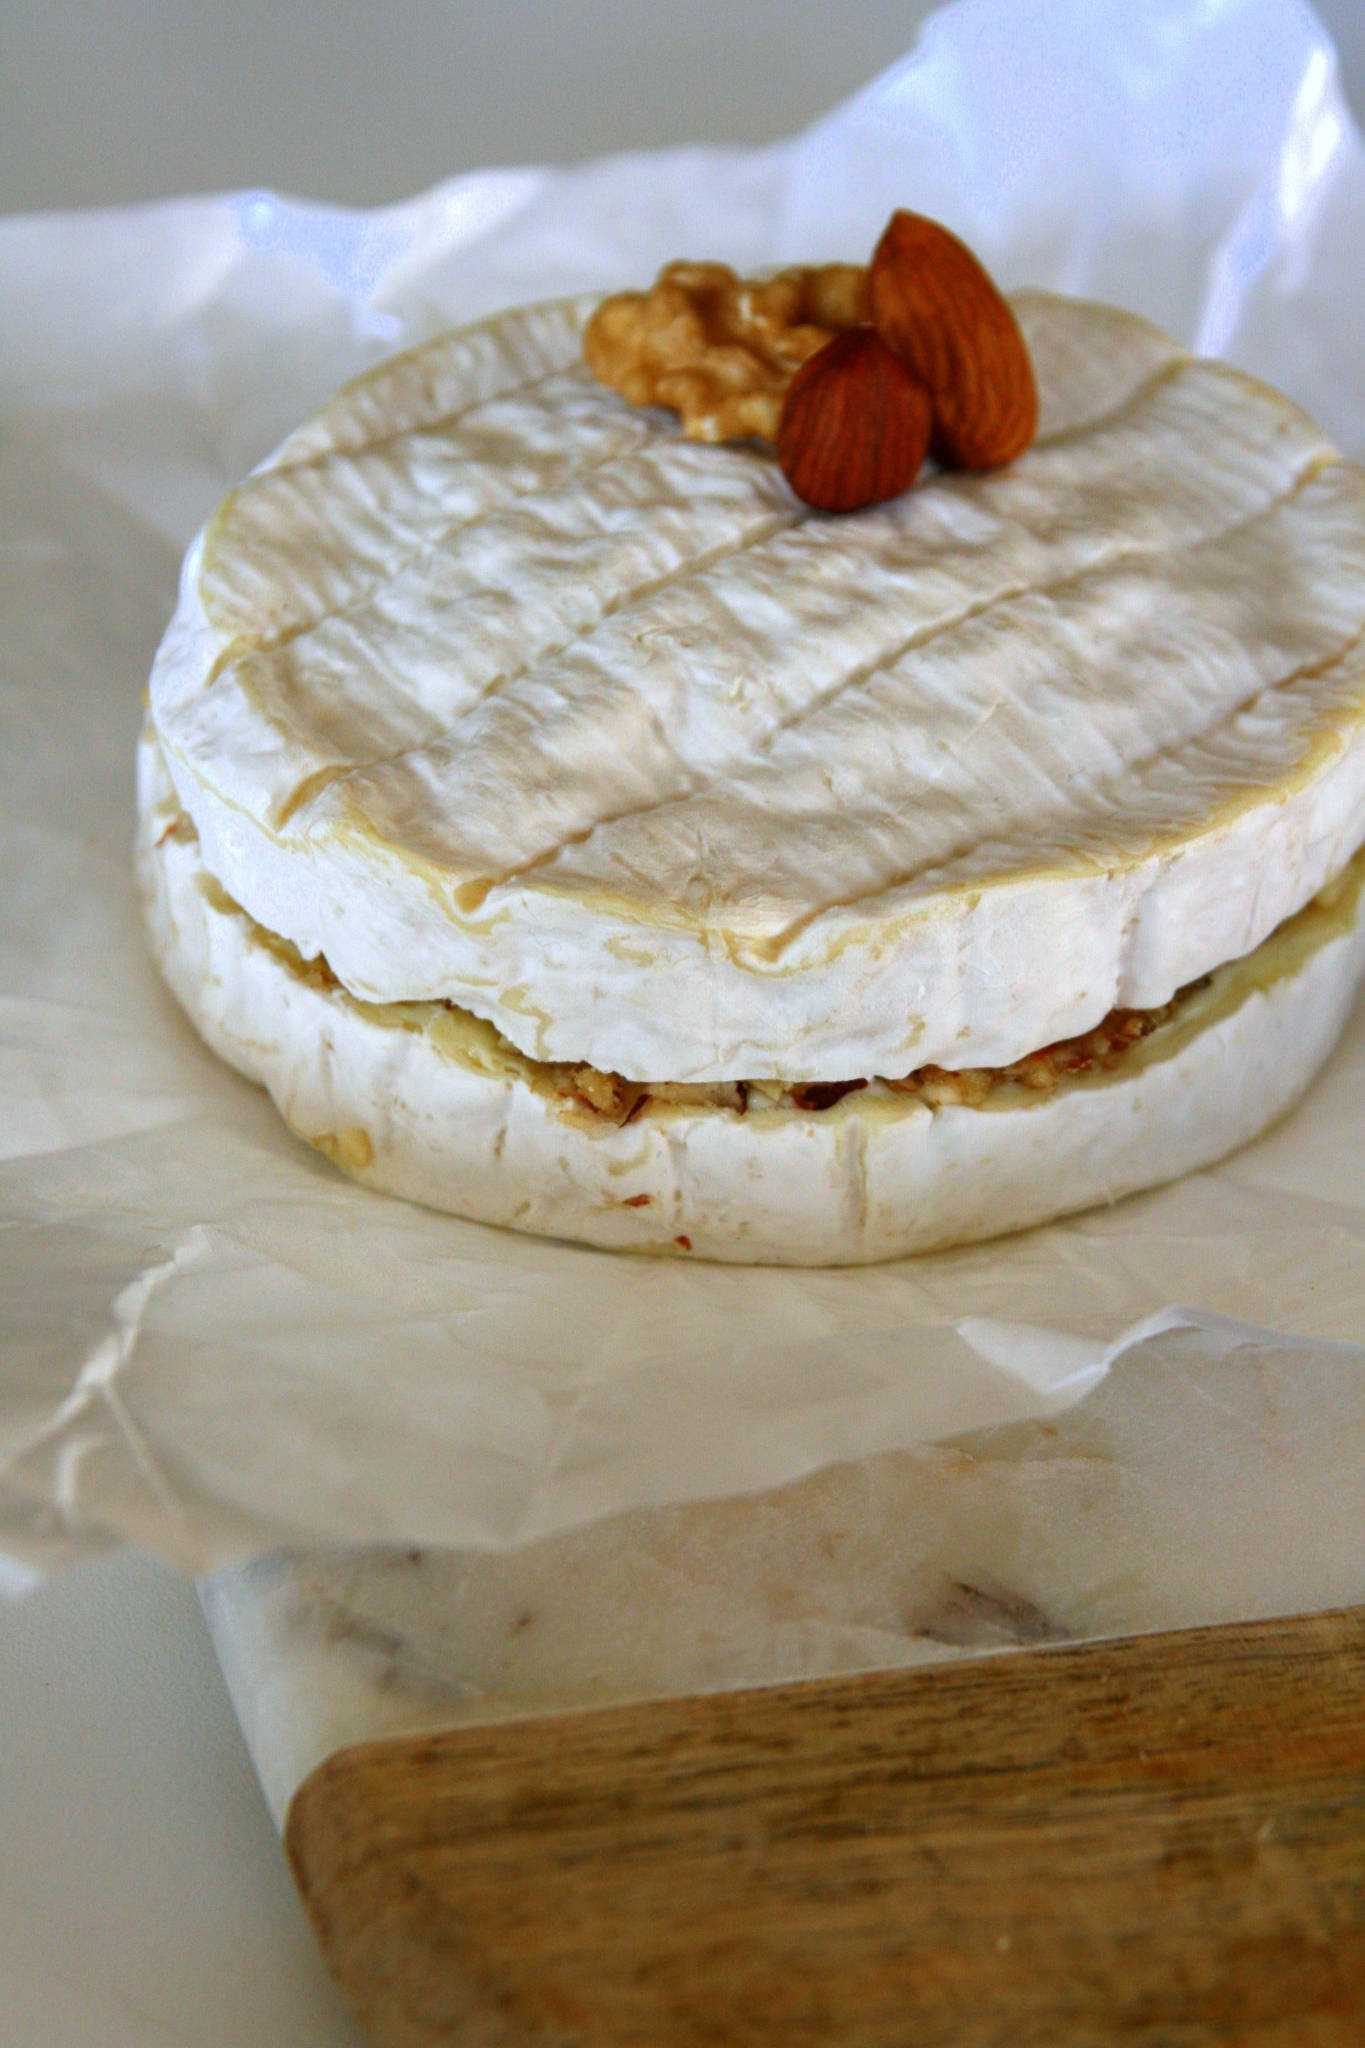 Camembert aux fruits secs et au miel